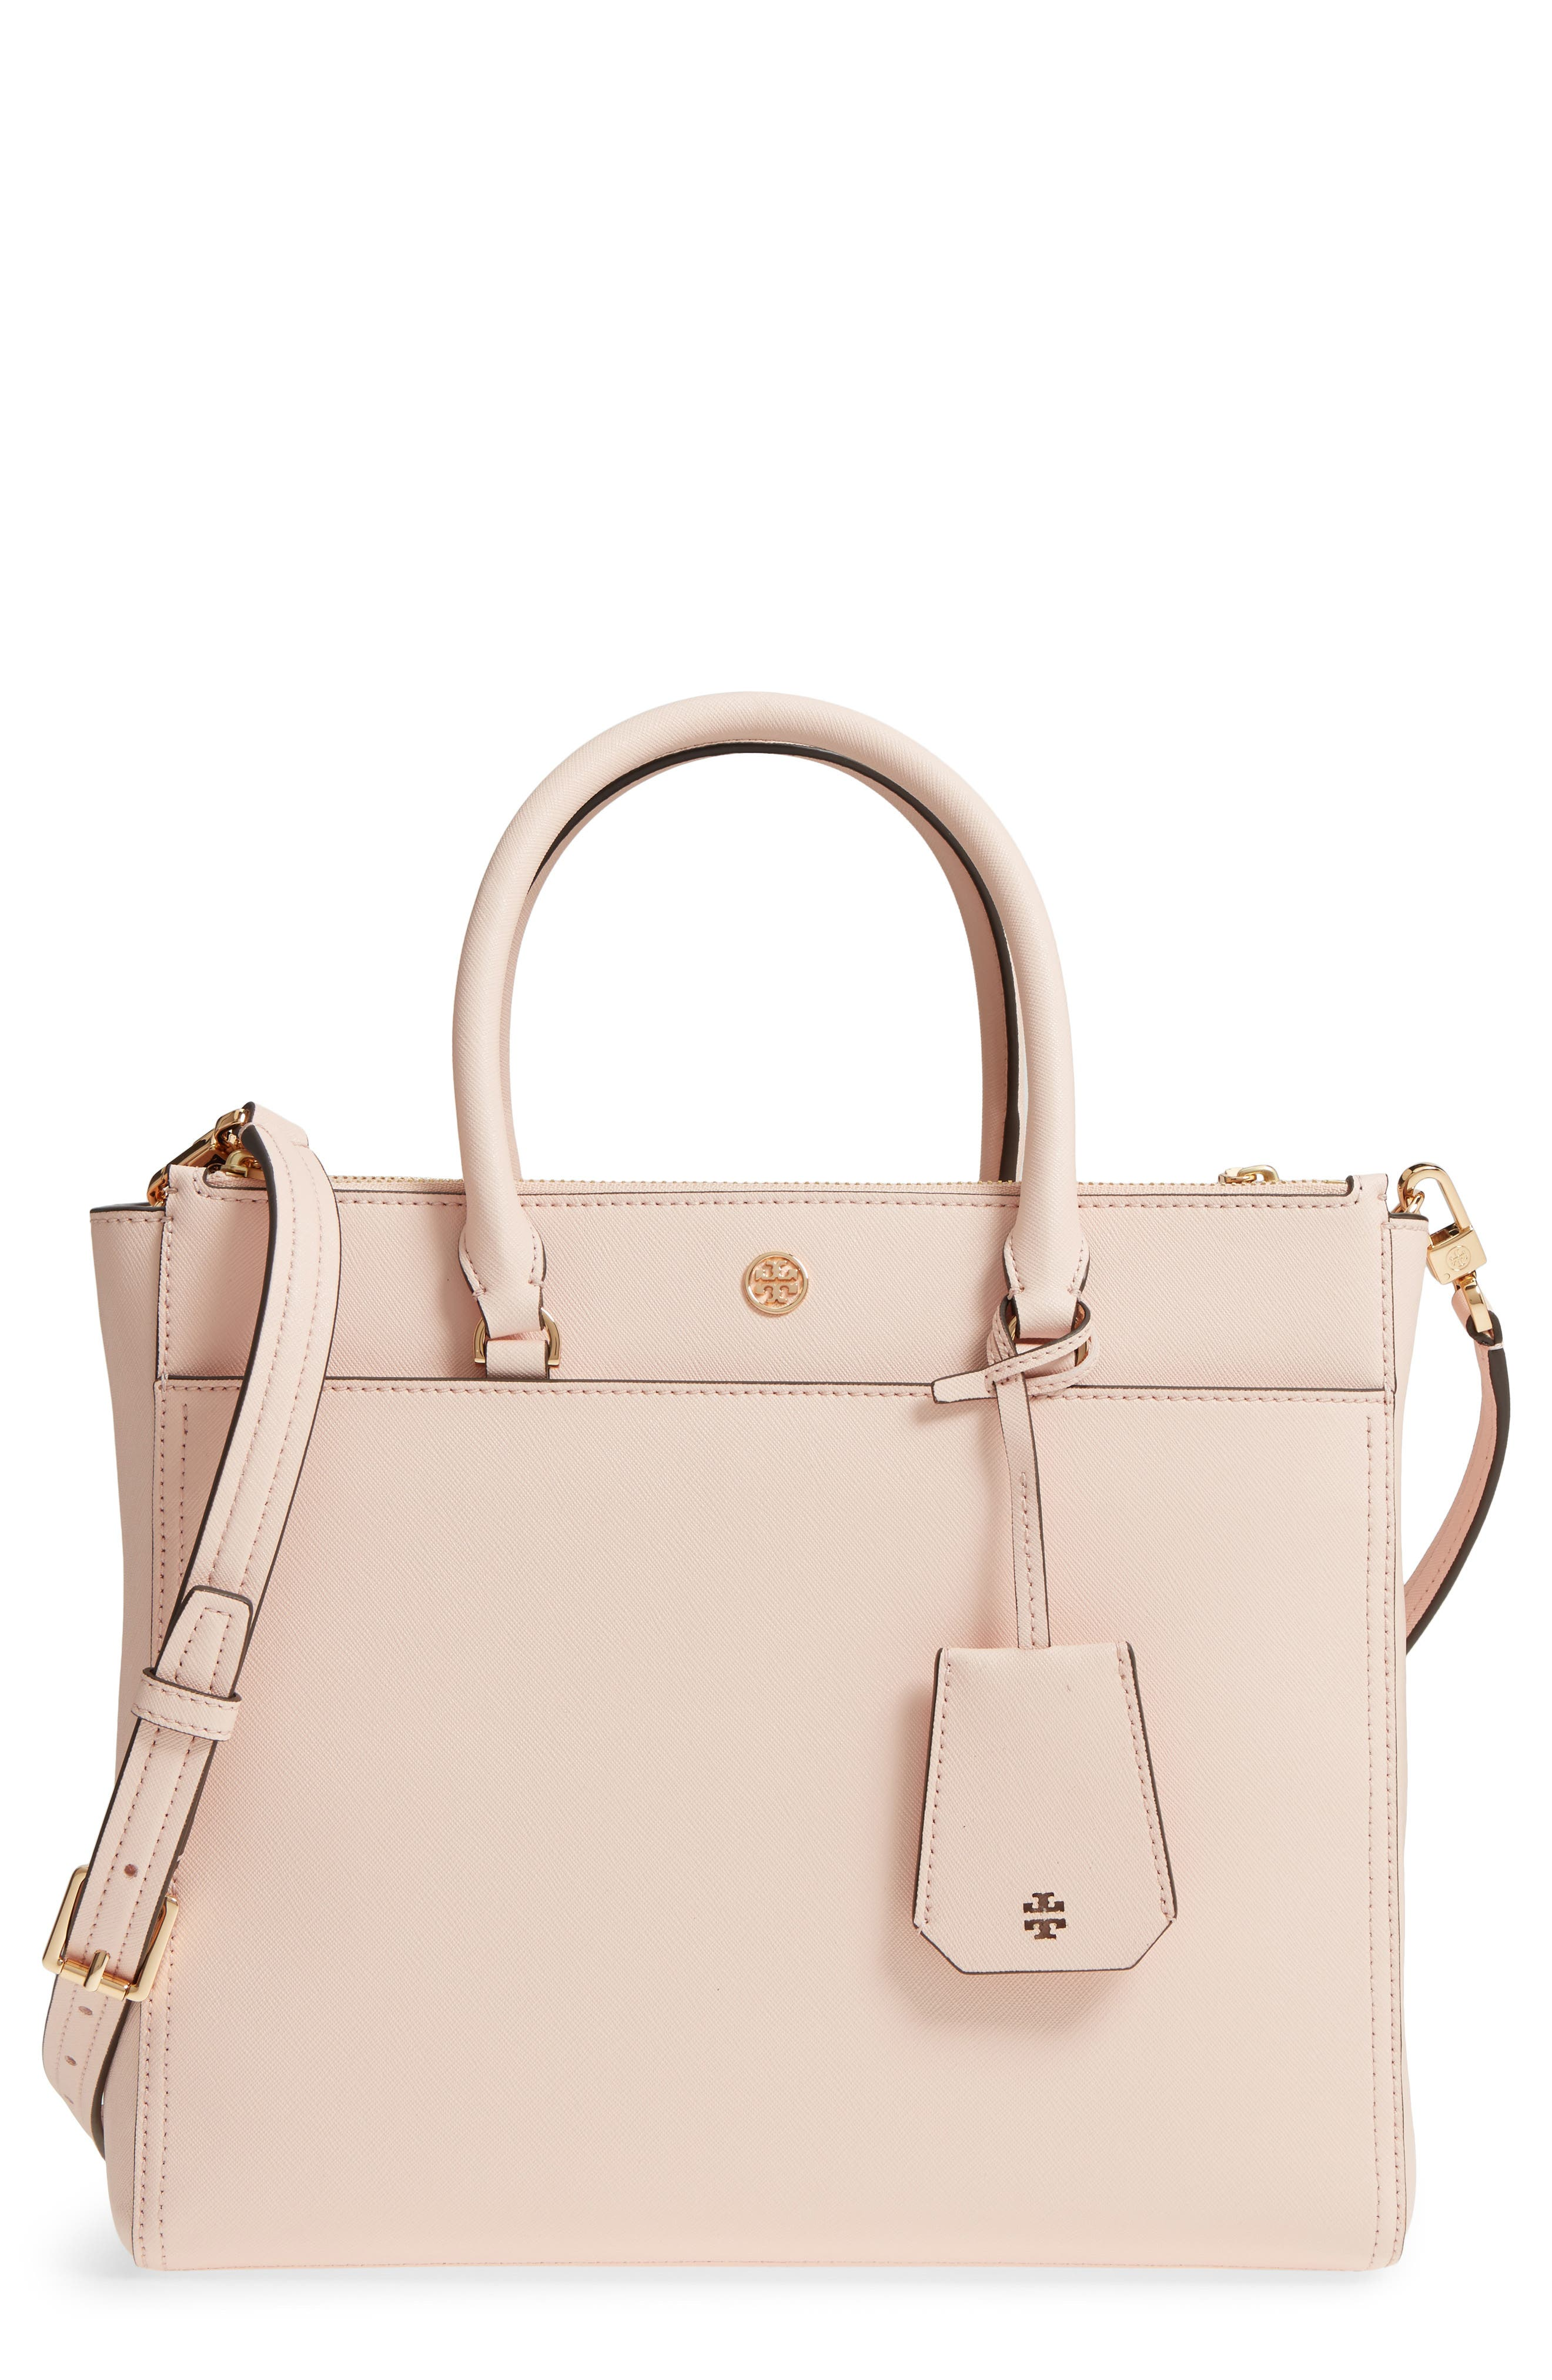 Robinson Double-Zip Leather Tote,                             Main thumbnail 1, color,                             PALE APRICOT / ROYAL NAVY